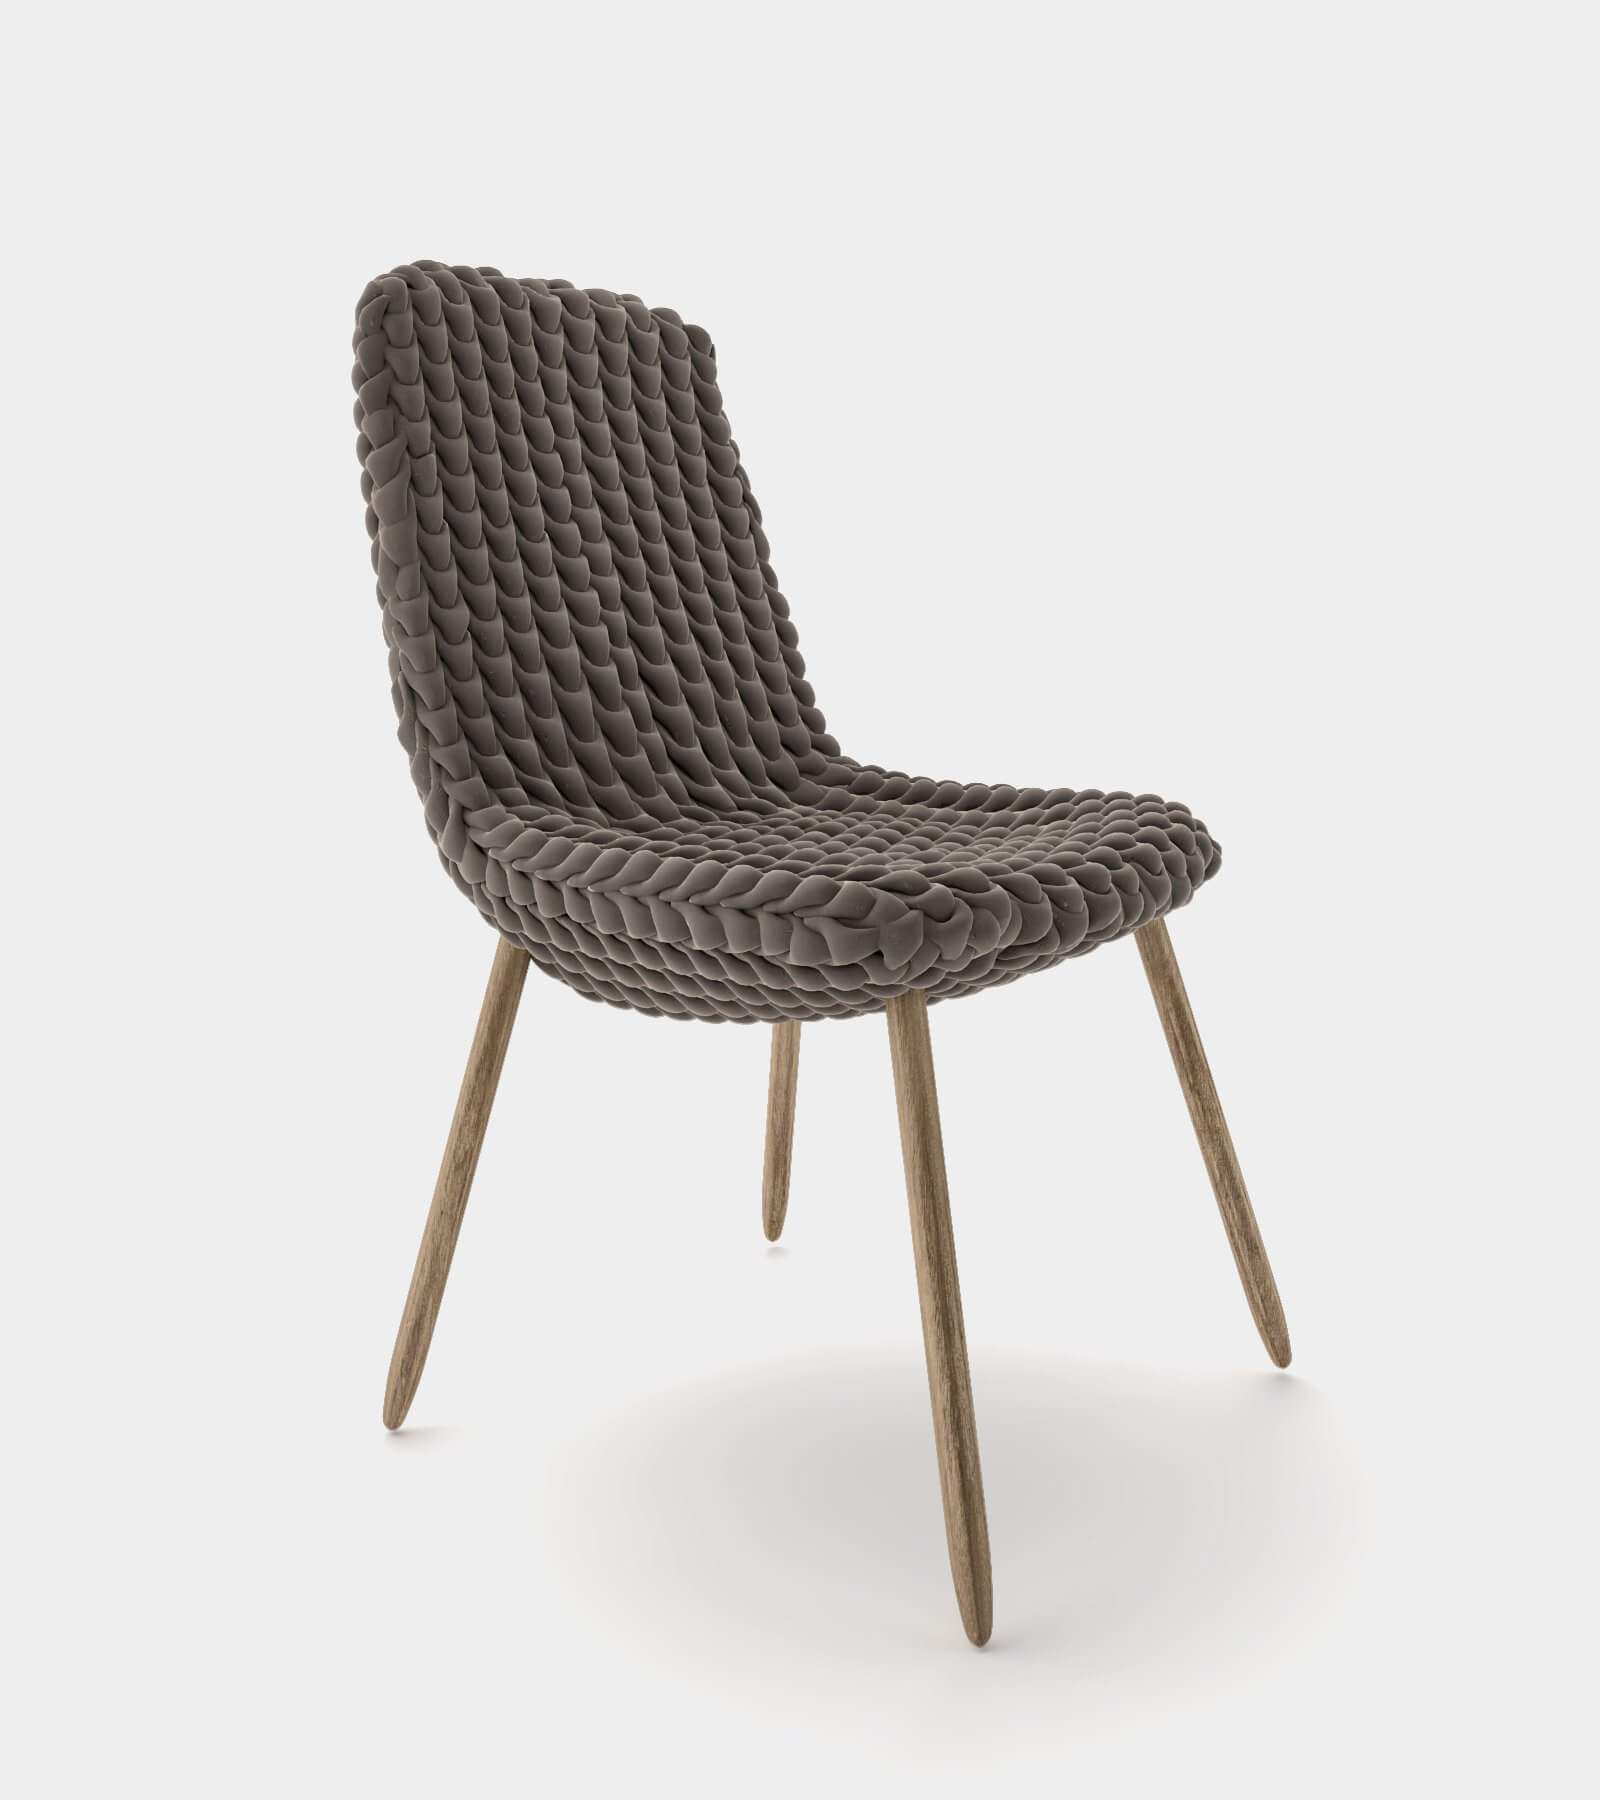 Fabric dining chair-1 - 3D model